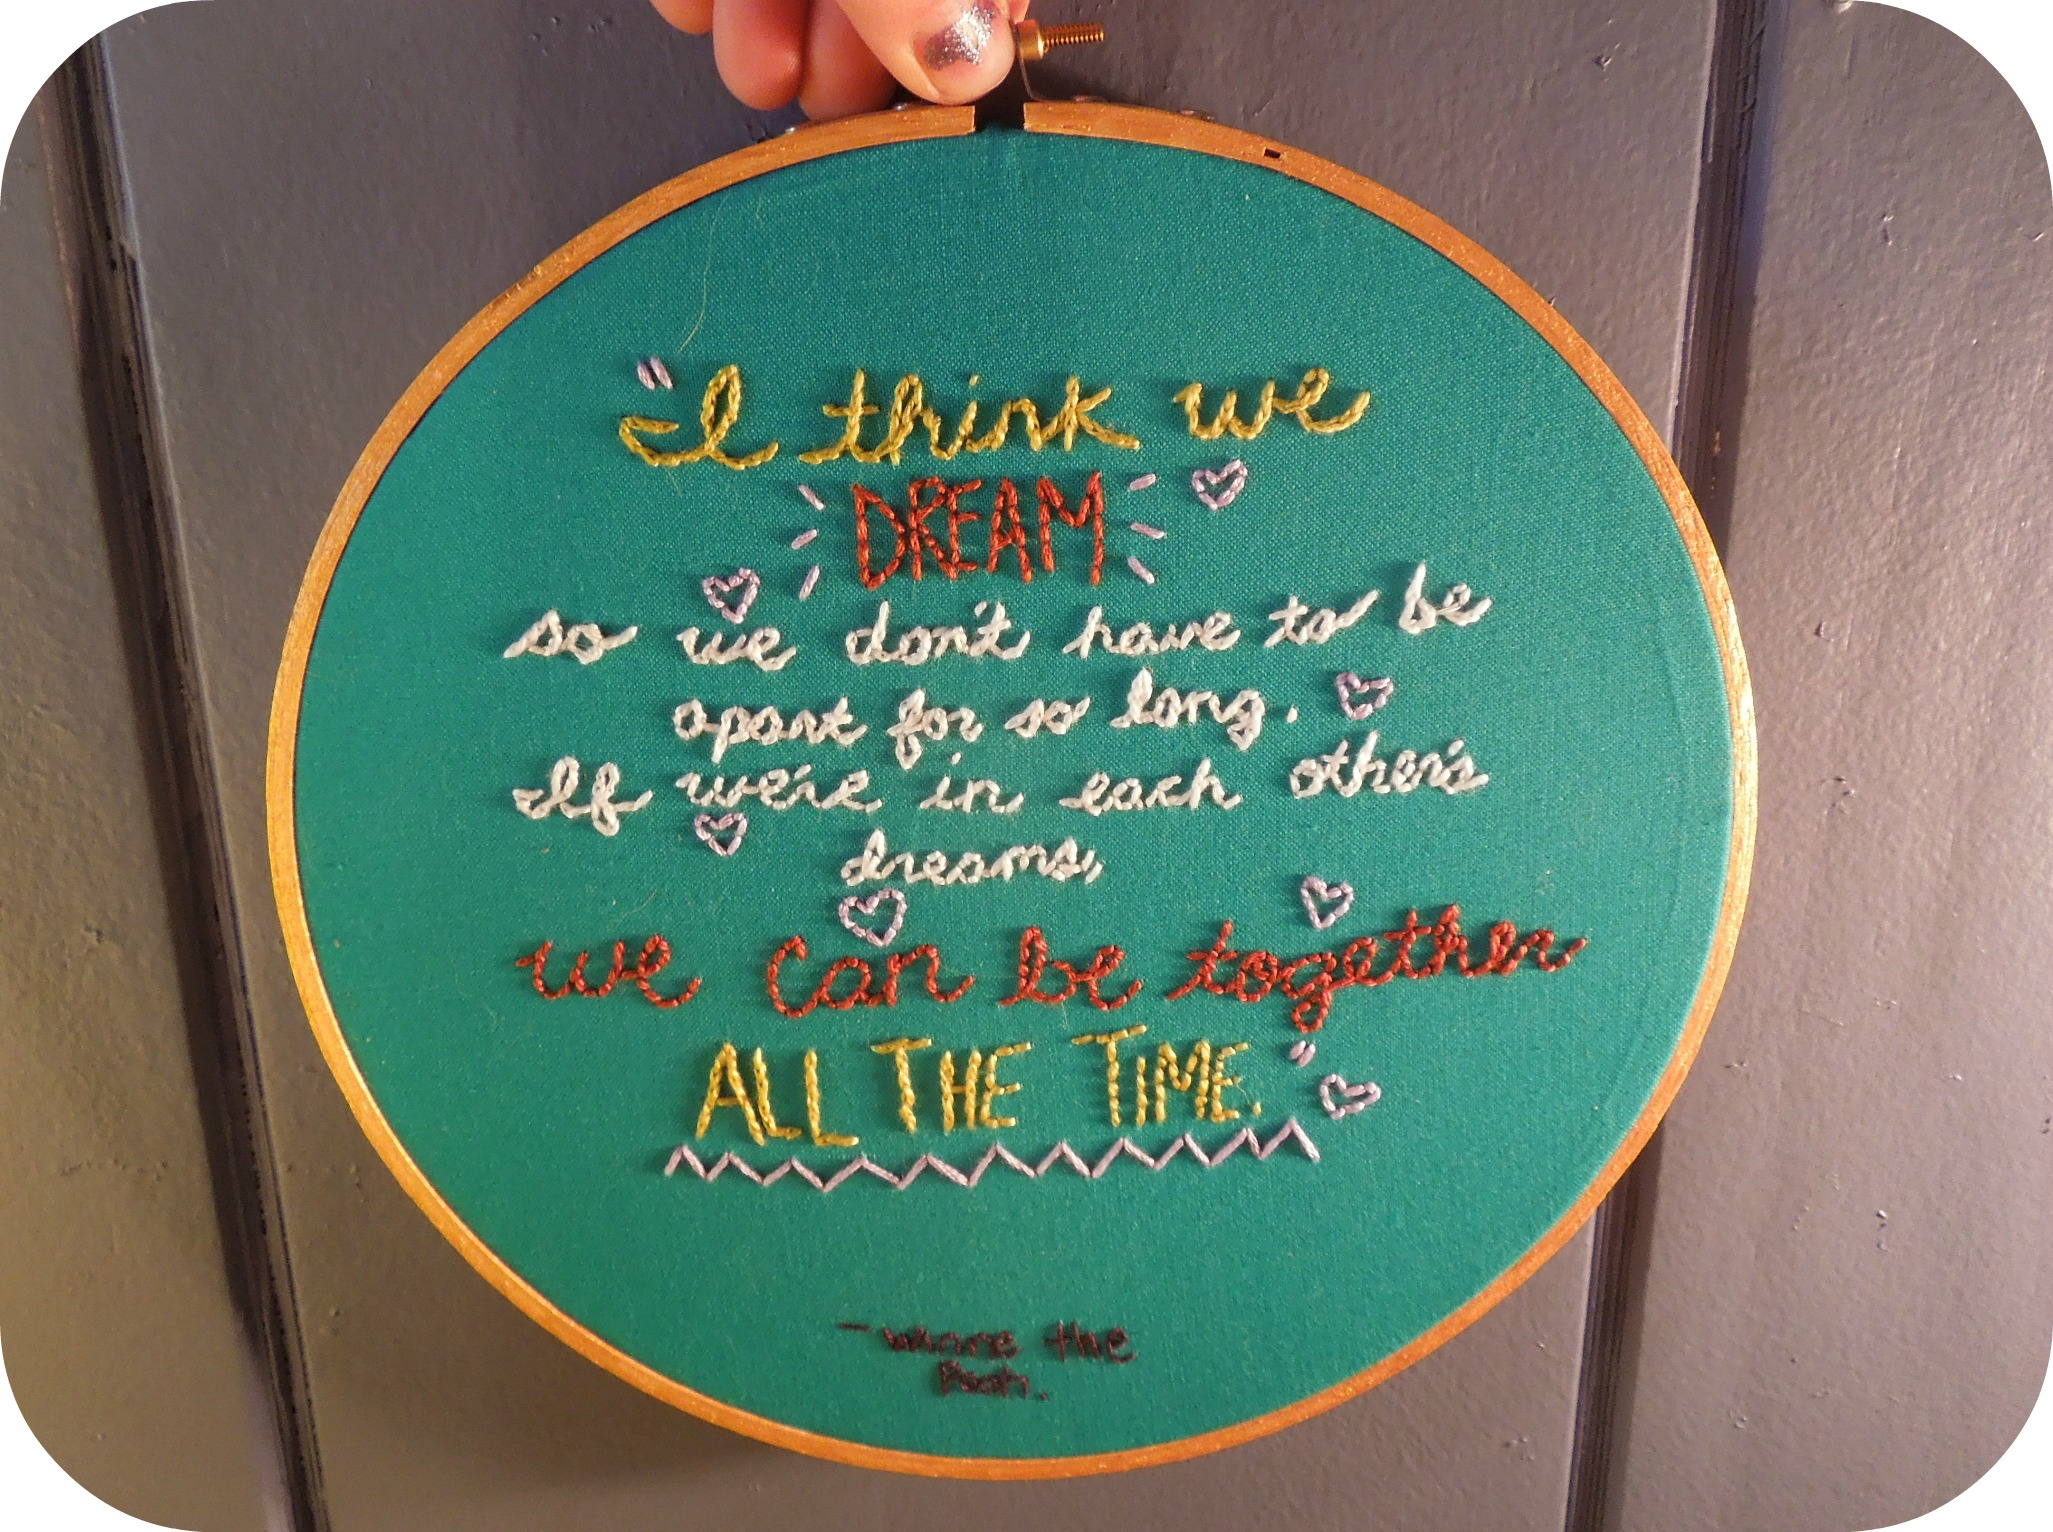 Embroidery quote #2